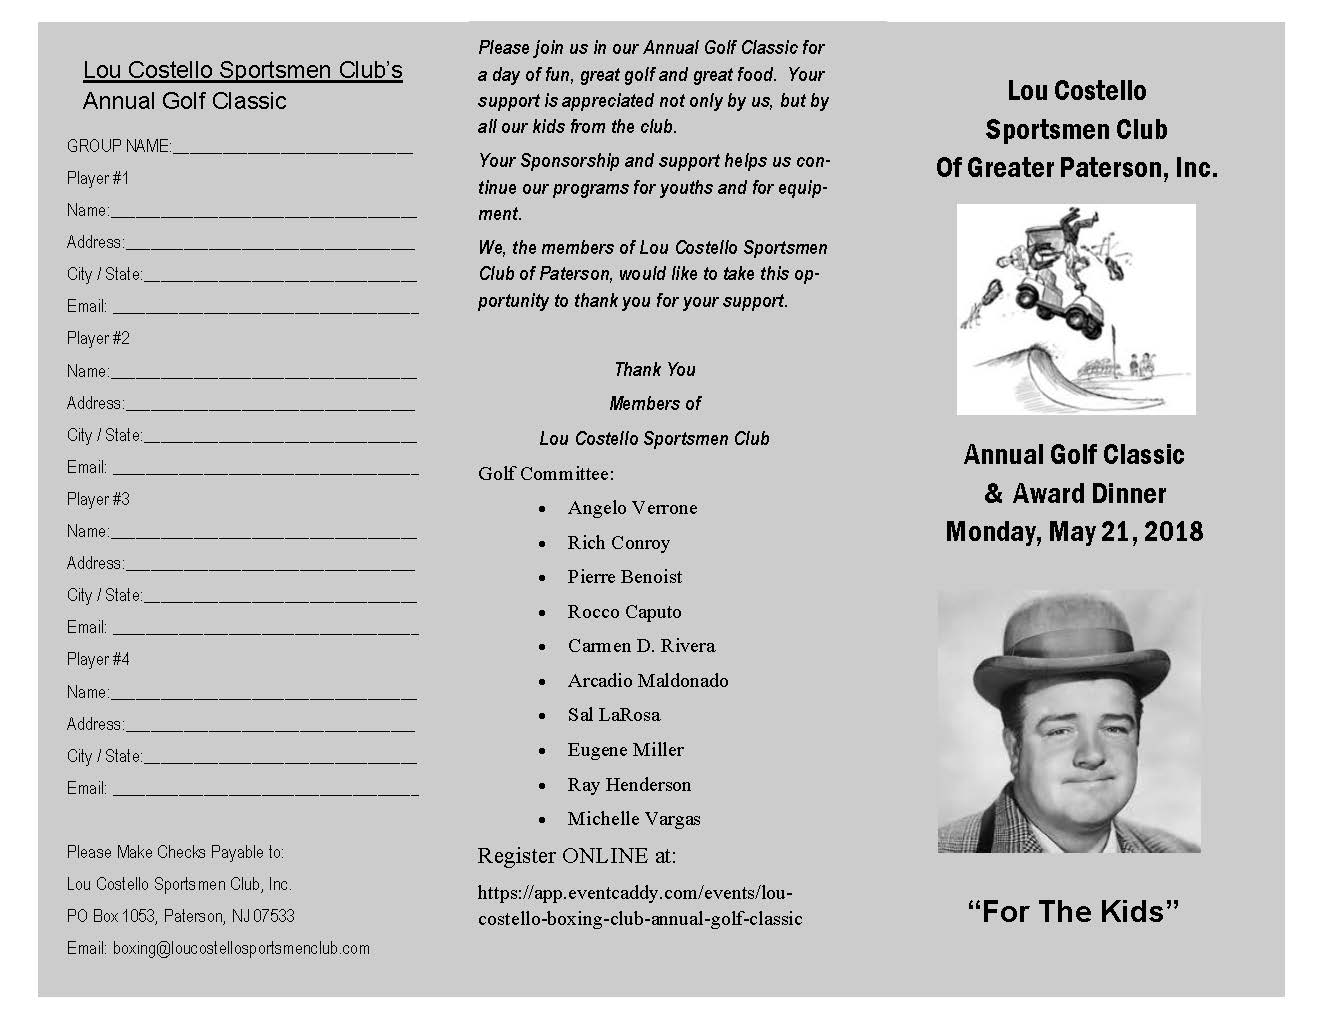 Lou Costello Boxing Club Annual Golf Classic gallery image #5